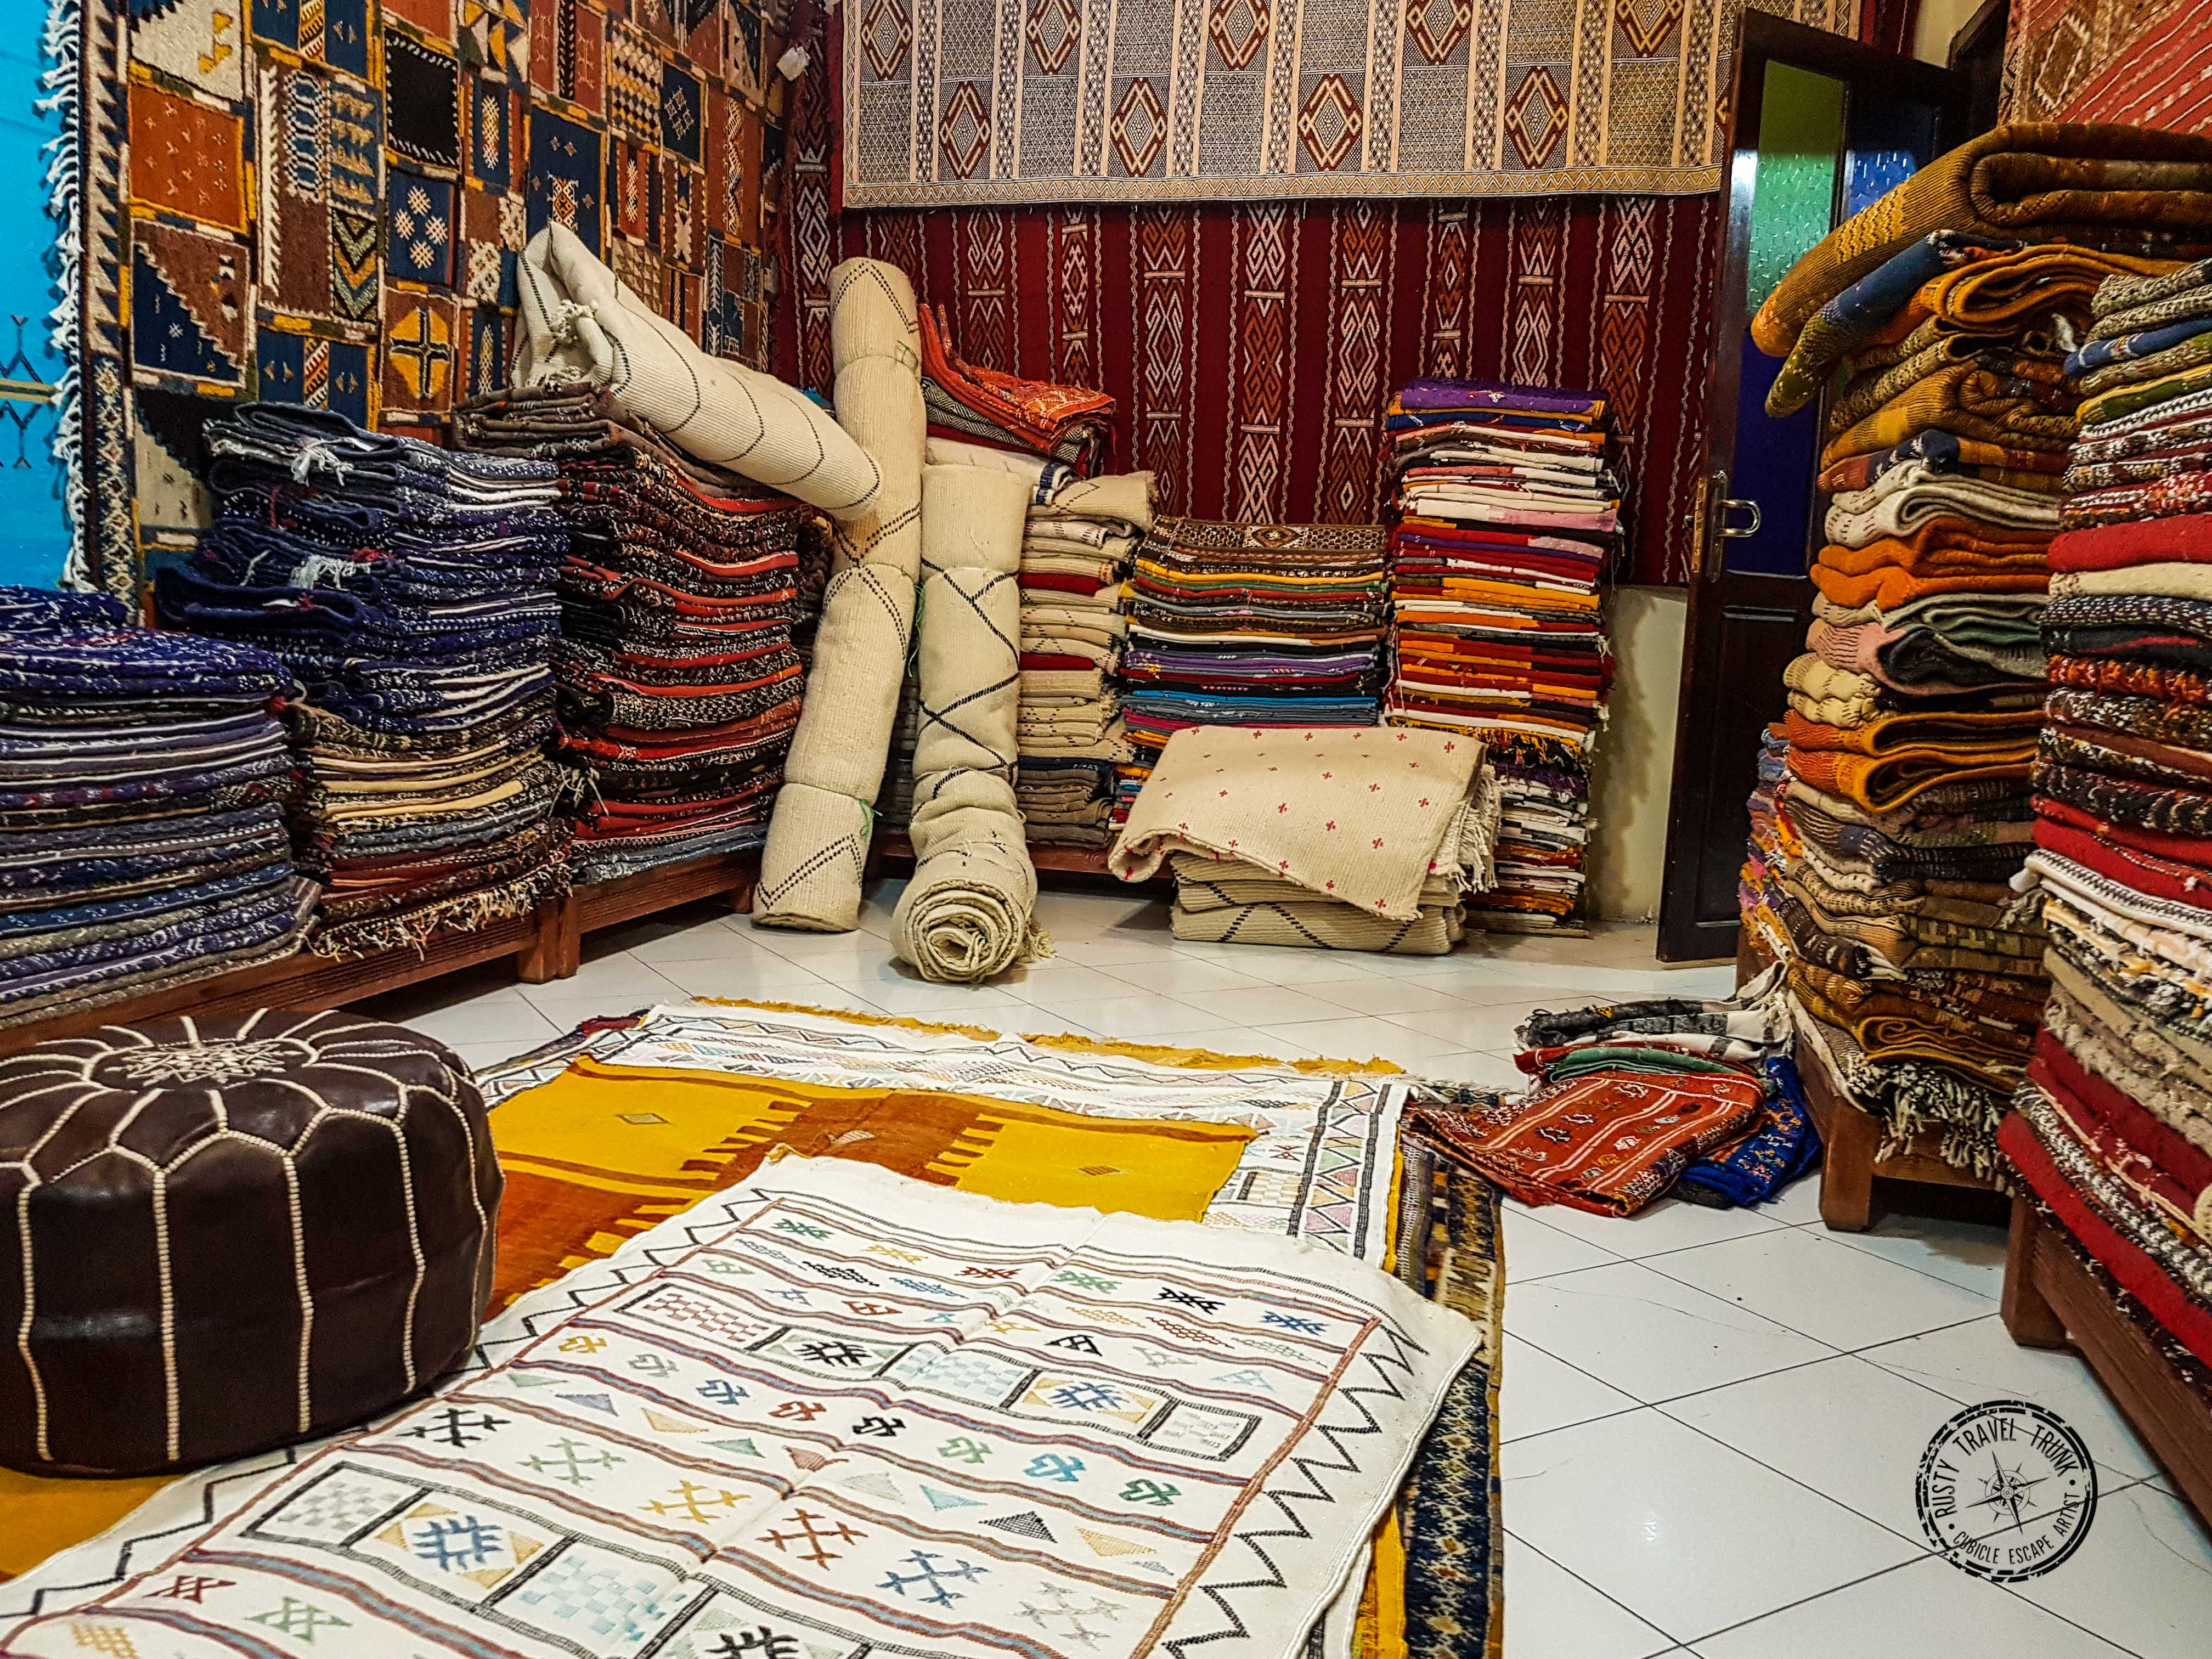 Marrakesh carpet and leather goods shop